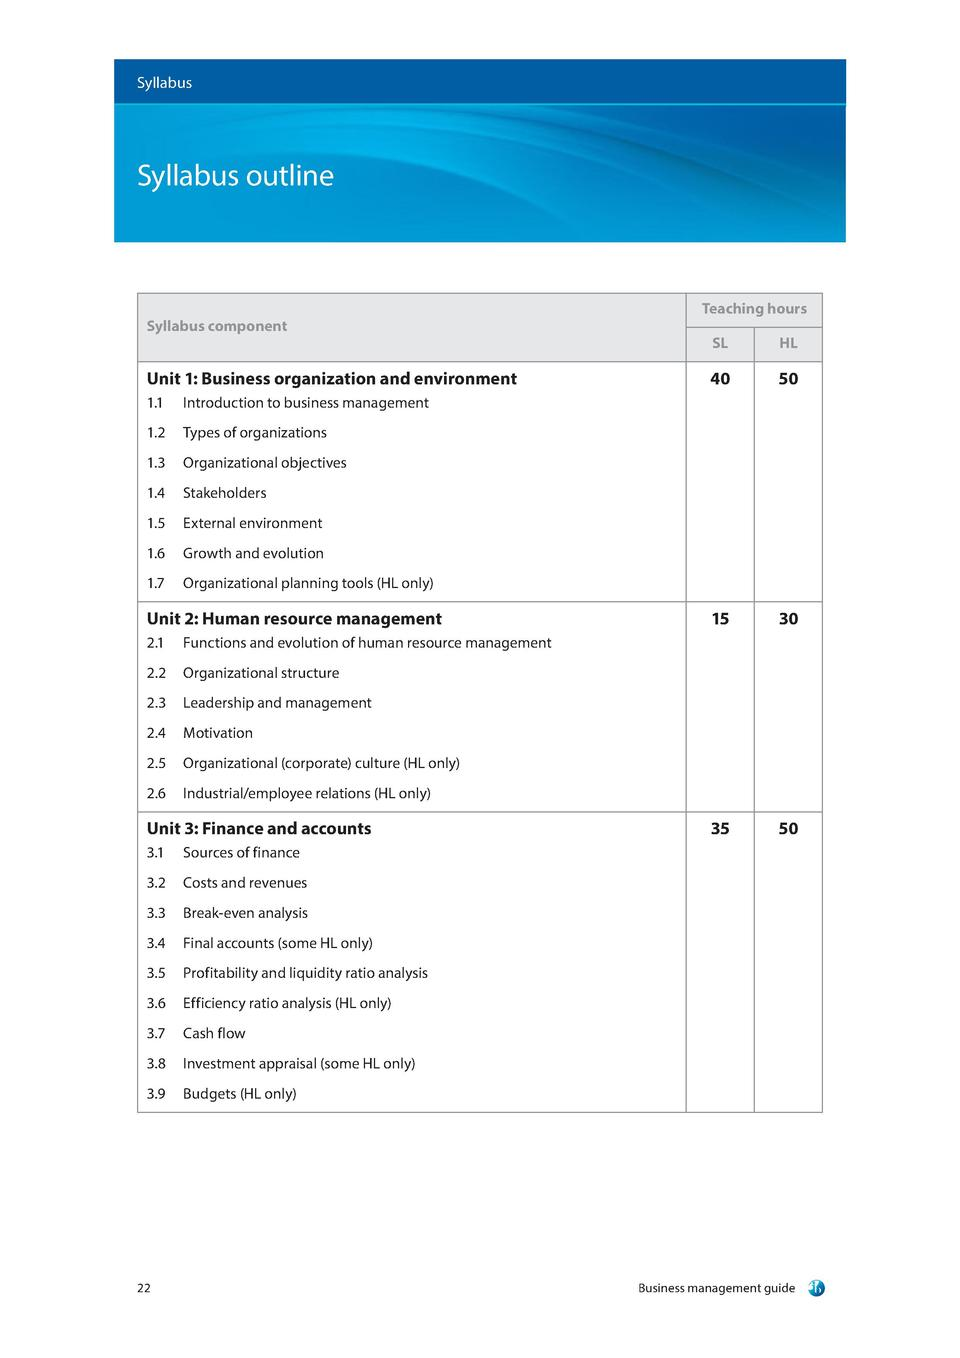 ib business and management past papers Exam-mate is an exam preparation and exam builder tool, containing a bank of topical and yearly past papers it covers cambridge igcse past papers, edexcel international gcse, cambridge and edexcel a level and ial along with their mark schemes students can use it to access questions related to topics, while.